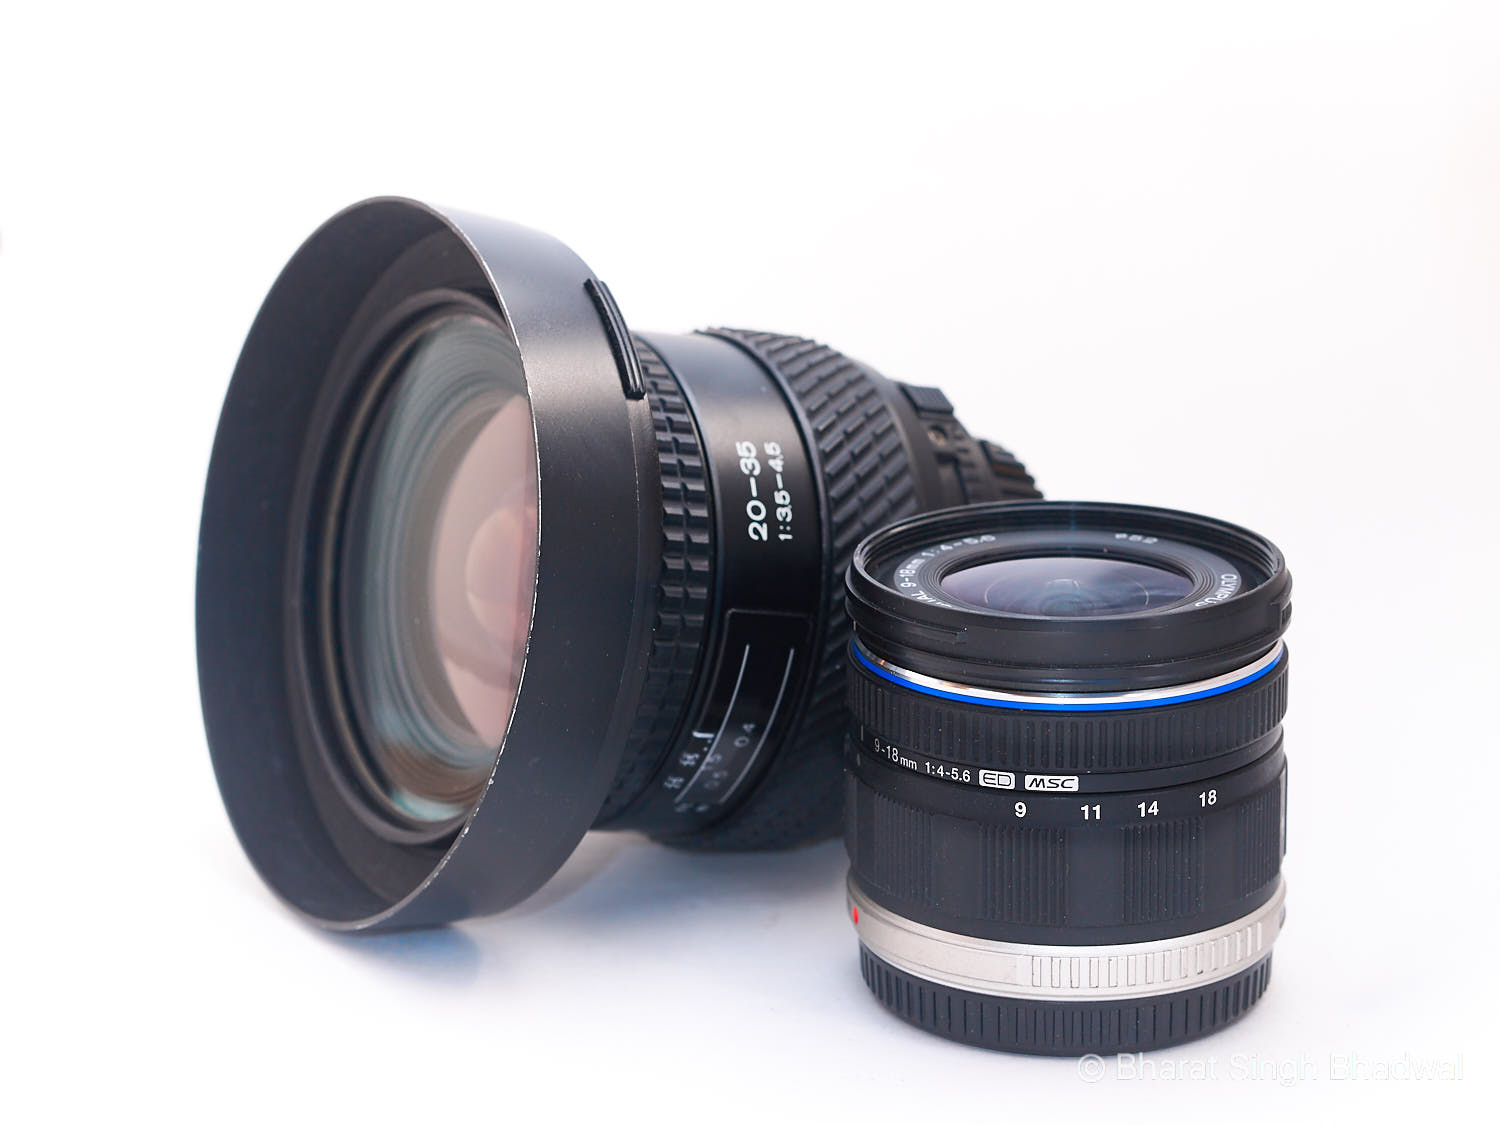 Size comparison between a full frame (20-35mm) wide angle lens and its equivalent micro4/3 lens (18-36mm) . The difference in size is startling.